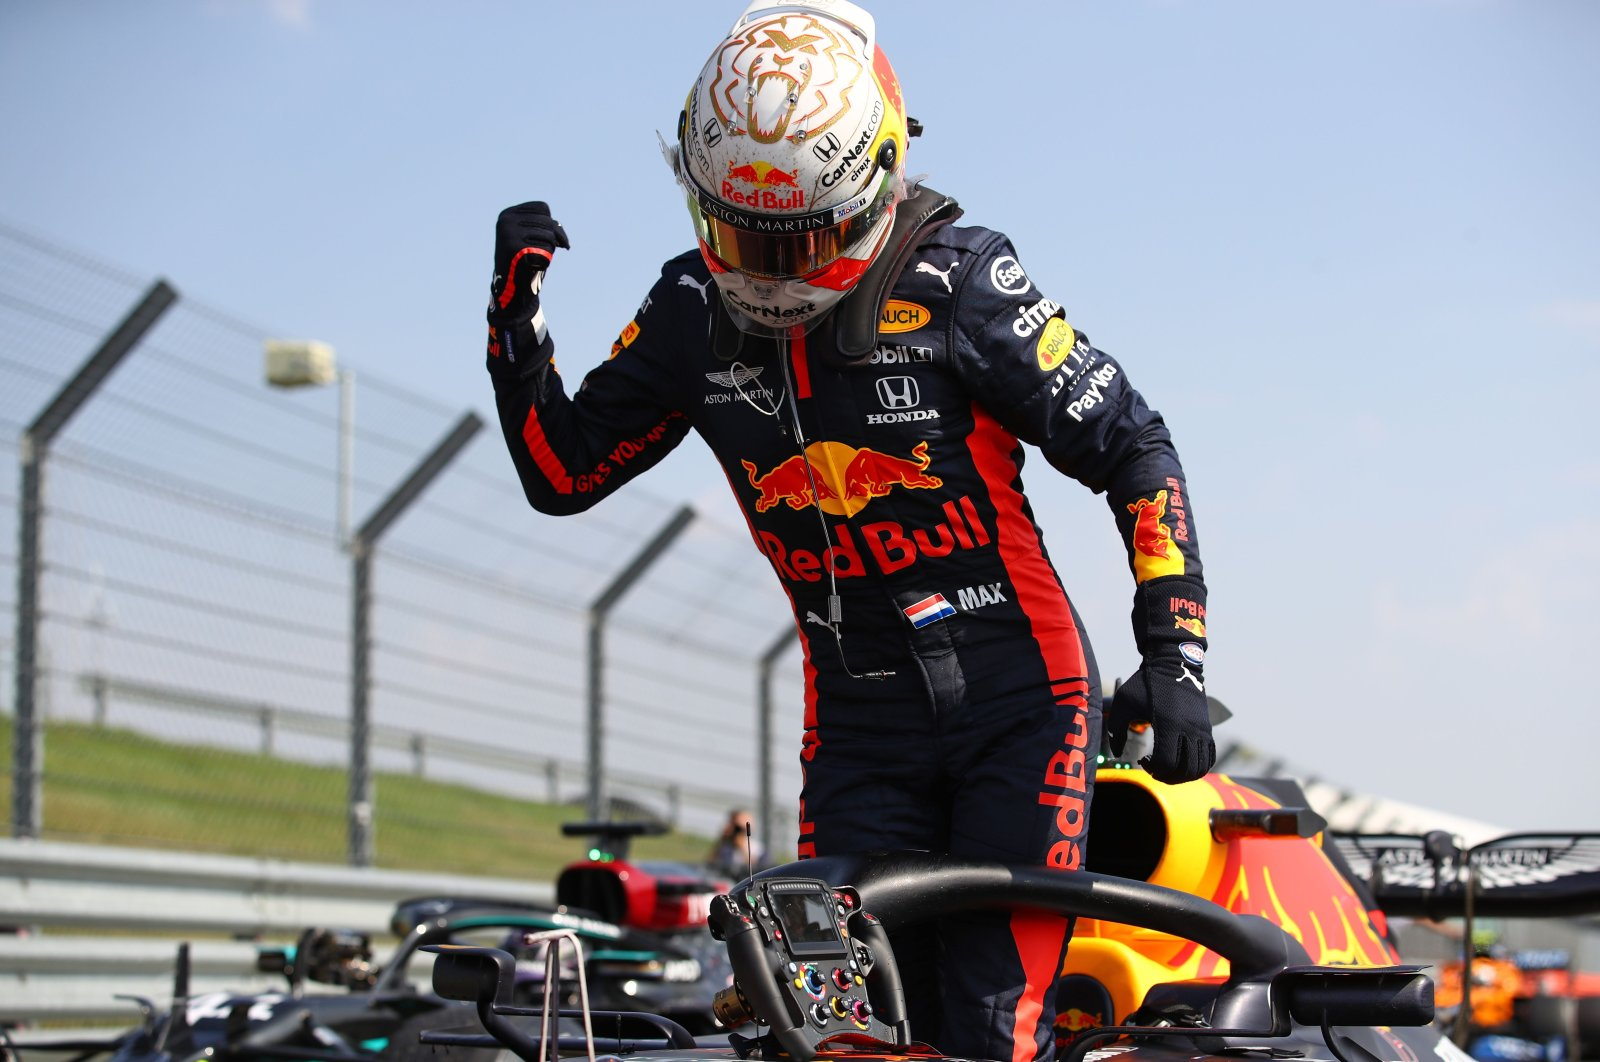 Red Bull driver Max Verstappen celebrates after winning the Formula 1 70th Anniversary Grand Prix in Northampton, Britain, Aug. 9, 2020. (AFP Photo)